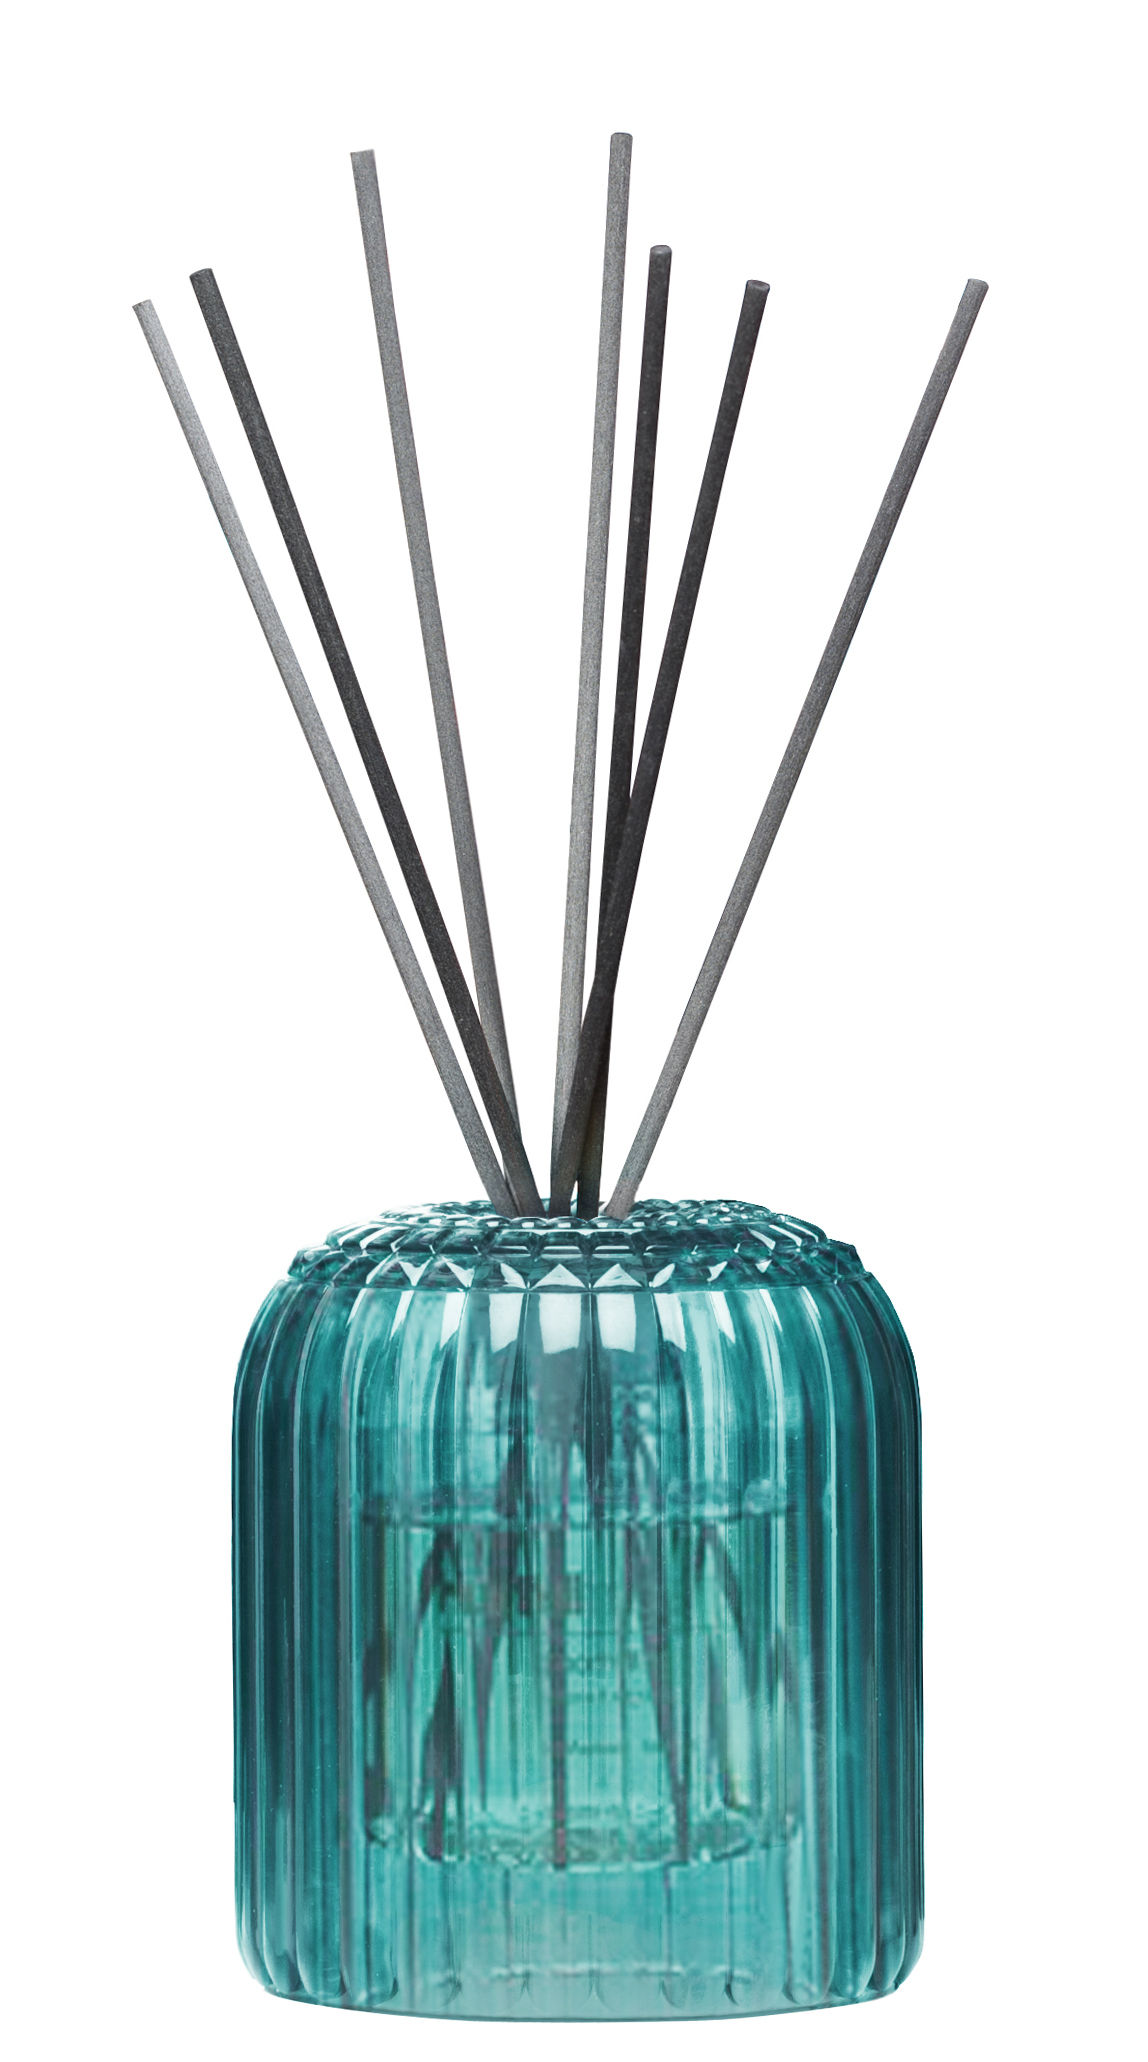 diffuseur de parfum cache cache kartell fragrances avec b tonnets bleu senteur 39 portofino. Black Bedroom Furniture Sets. Home Design Ideas